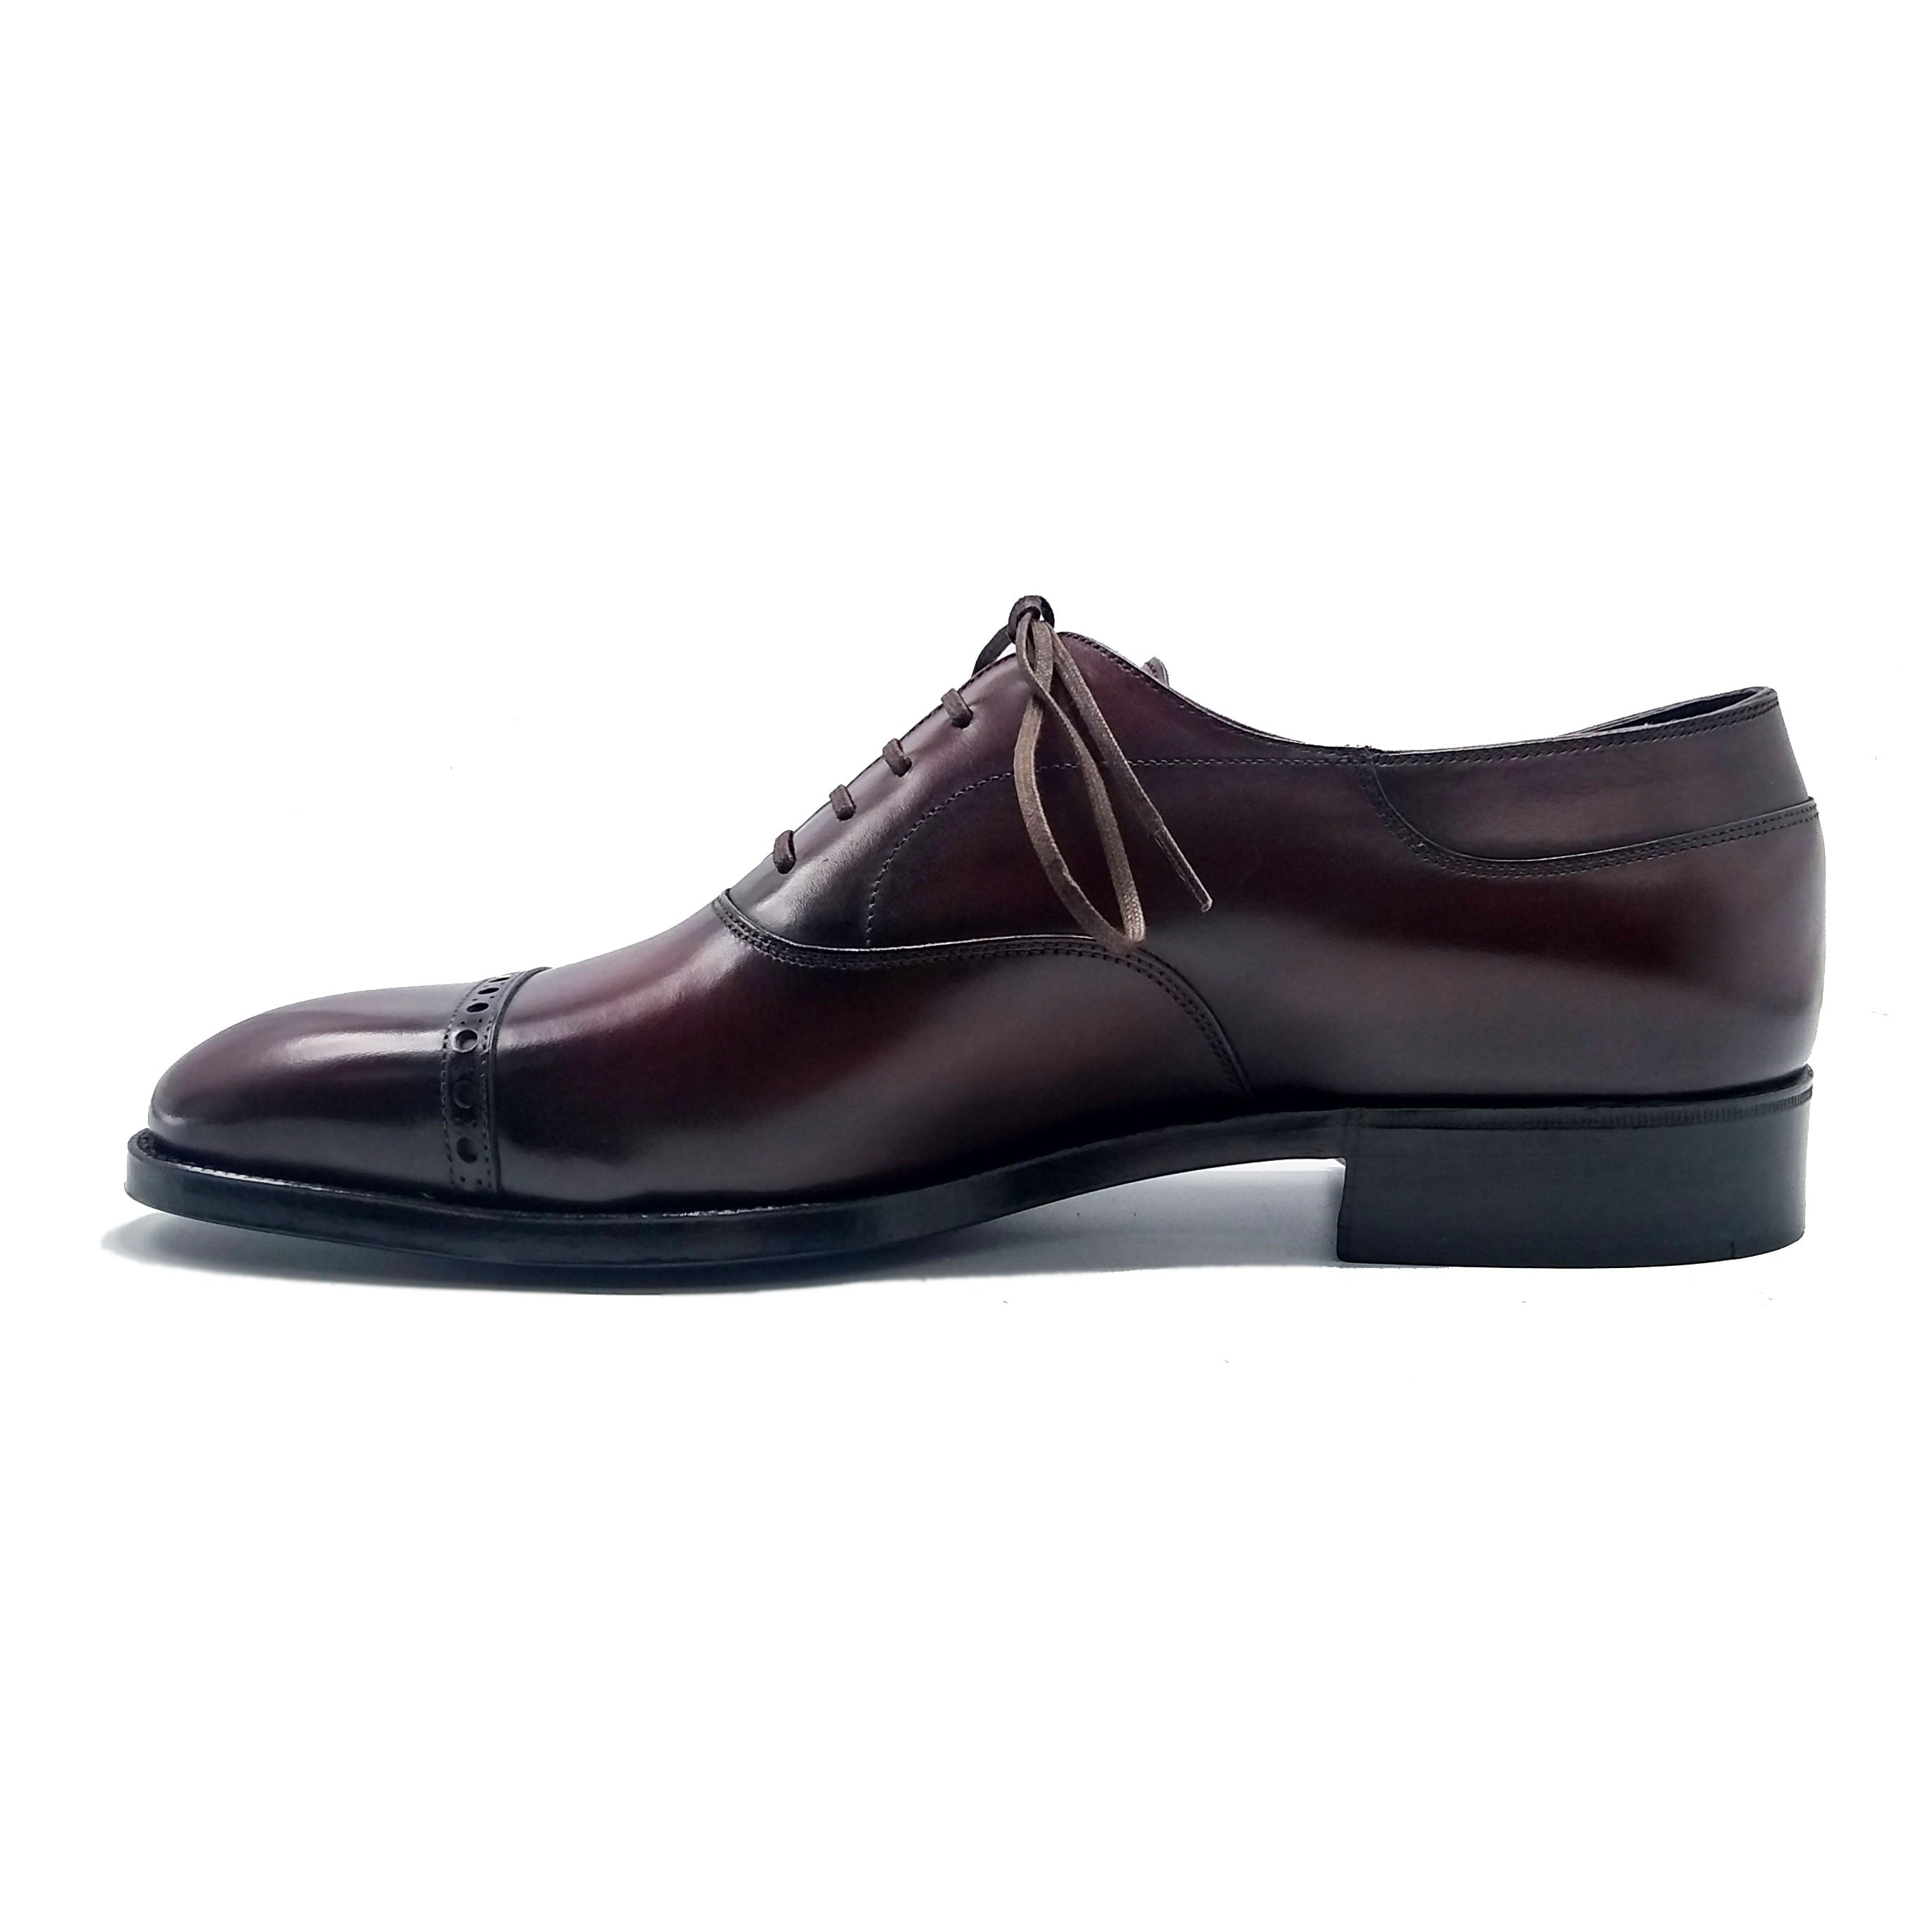 Cap Toe Oxford Shoe - Brown Handmade Patina